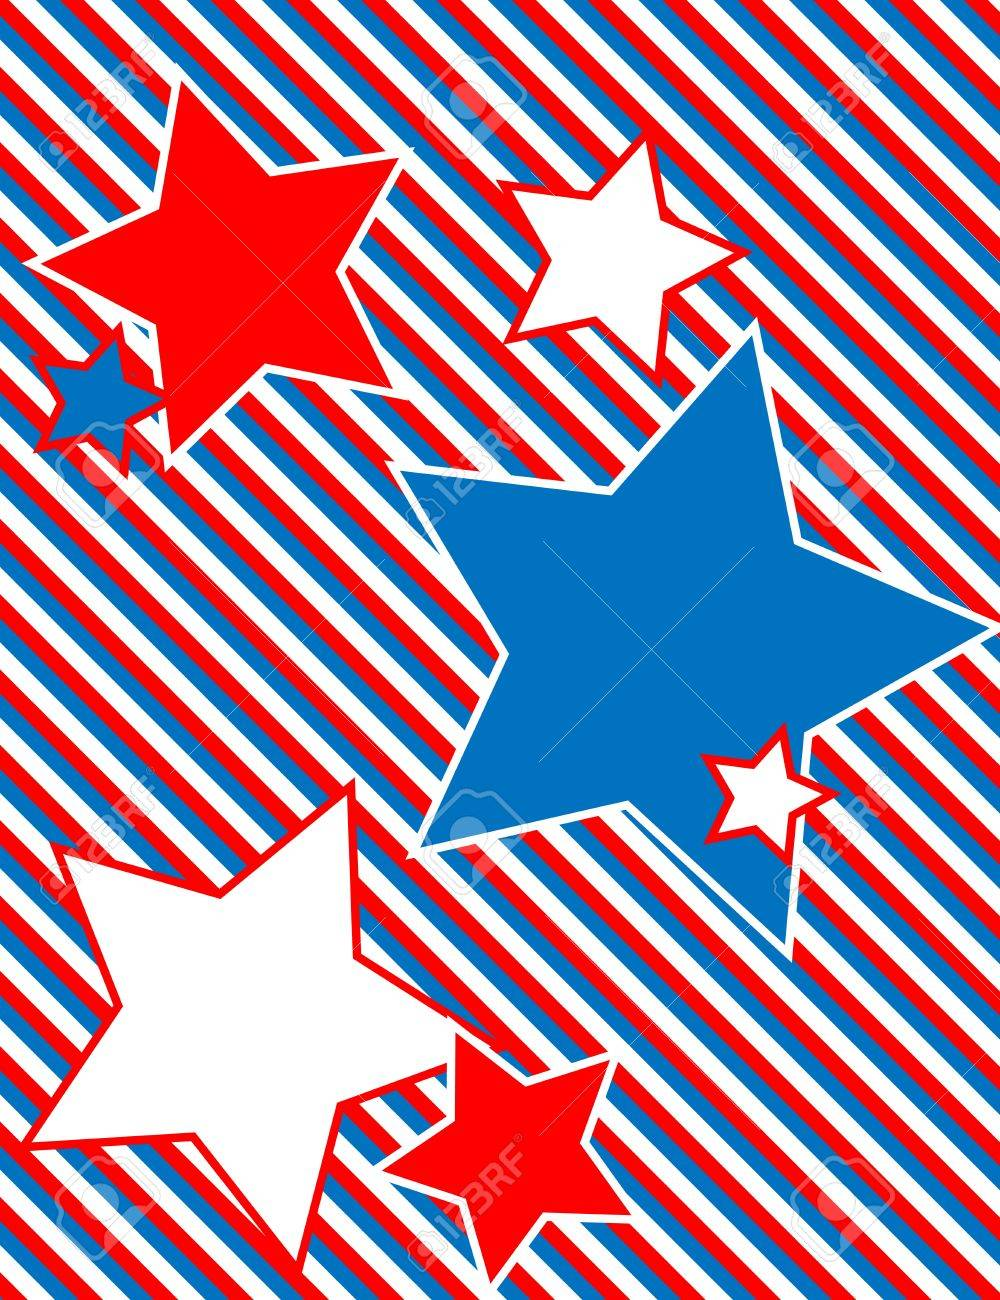 Red white and blue patriotic star background with a striped red white and blue patriotic star background with a striped background stock vector 13092439 voltagebd Choice Image